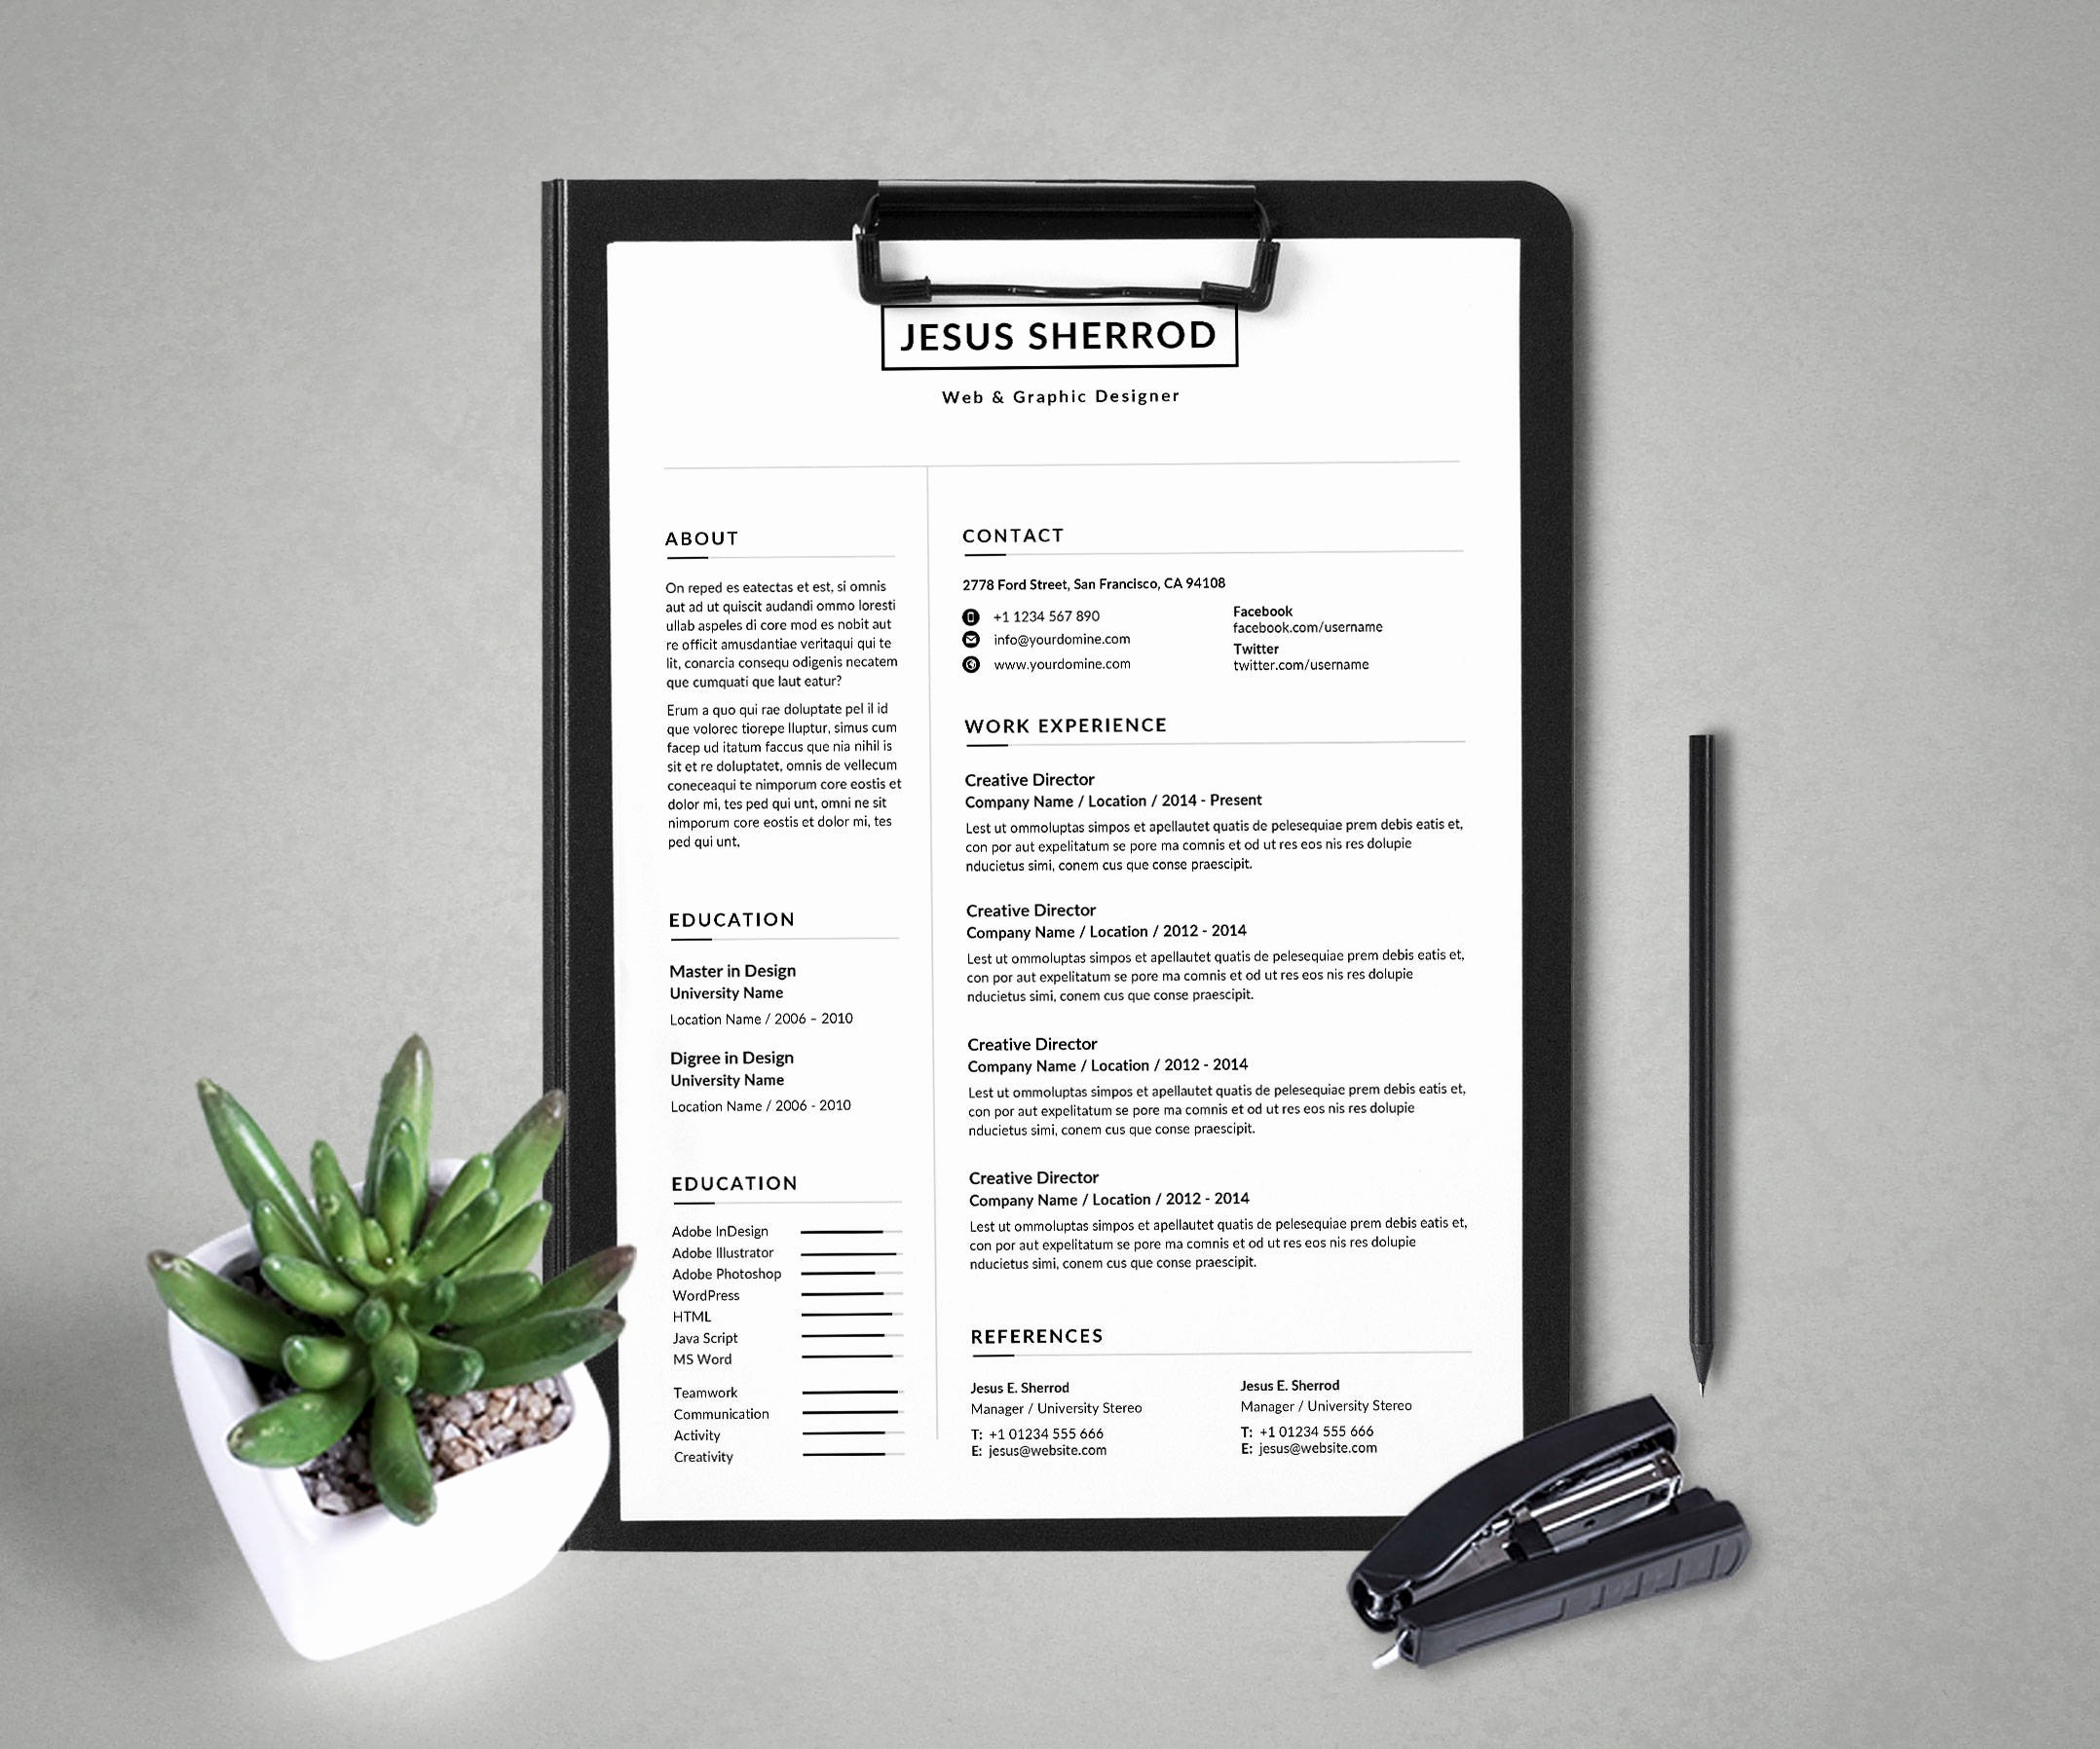 Jr Web Developer Resume - 23 Elegant Junior Web Developer Resume